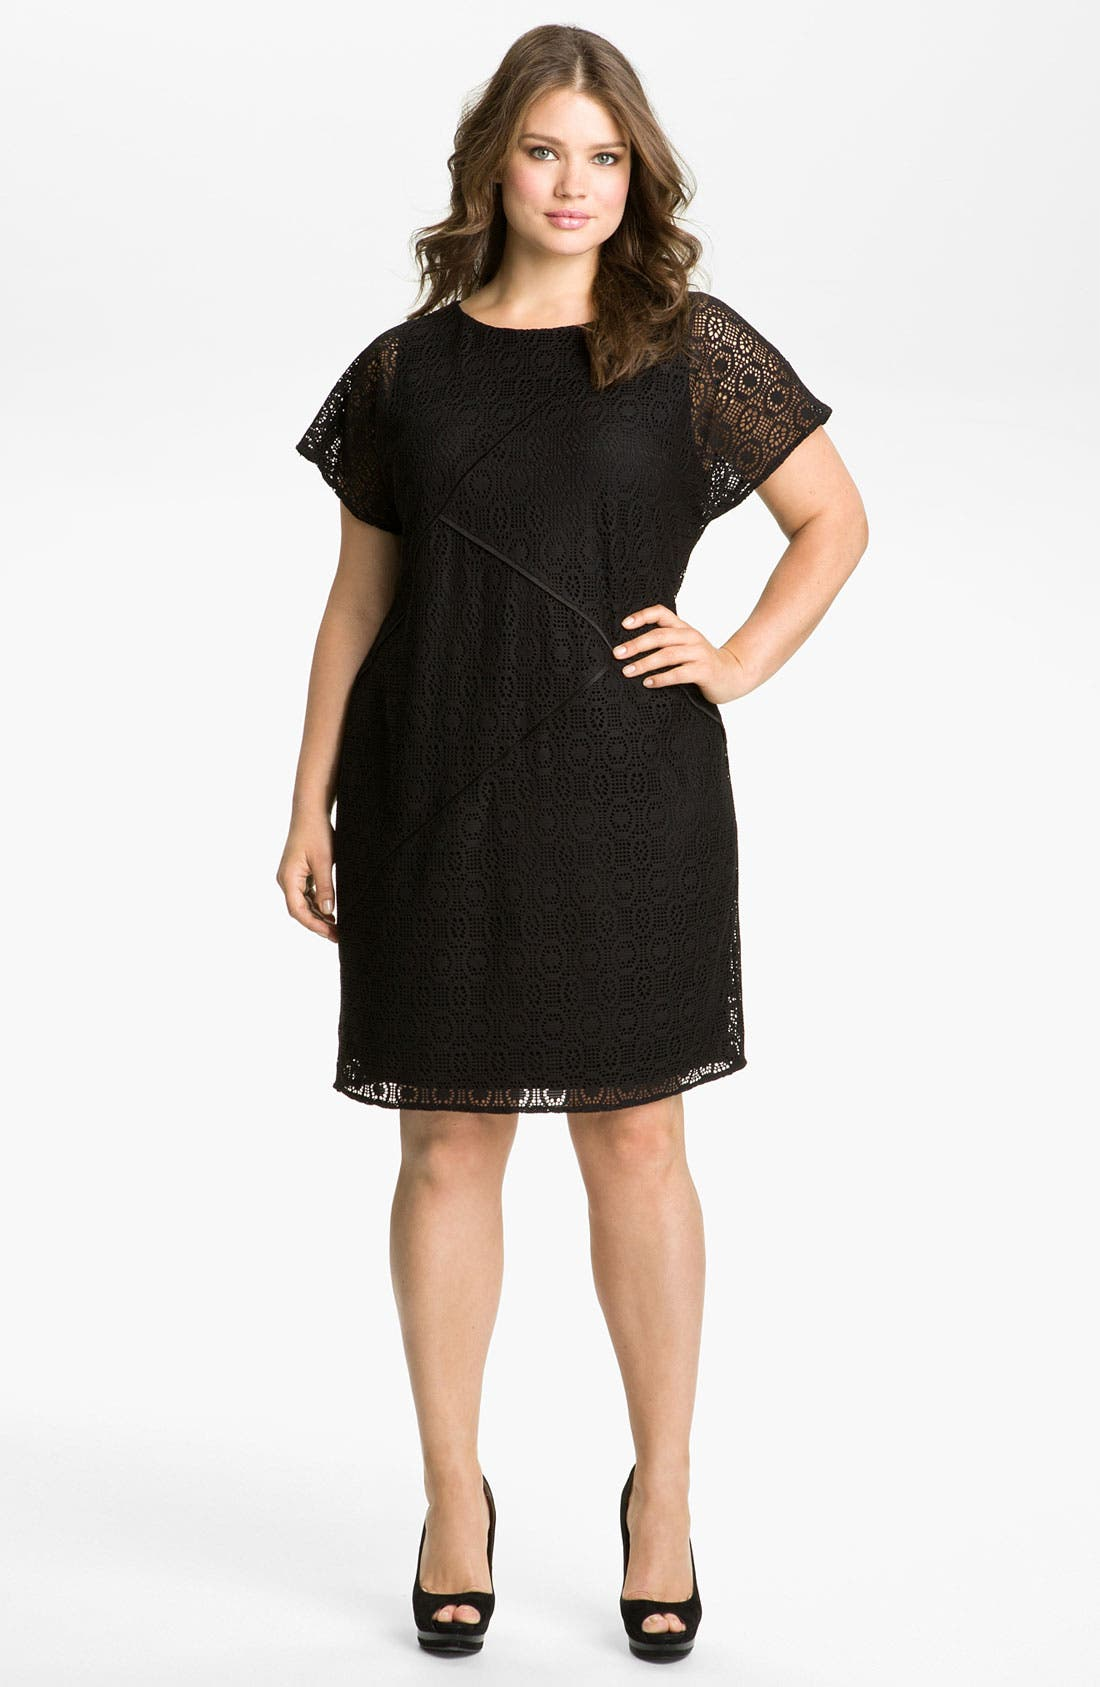 Alternate Image 1 Selected - Adrianna Papell Seamed Lace Dress (Plus)